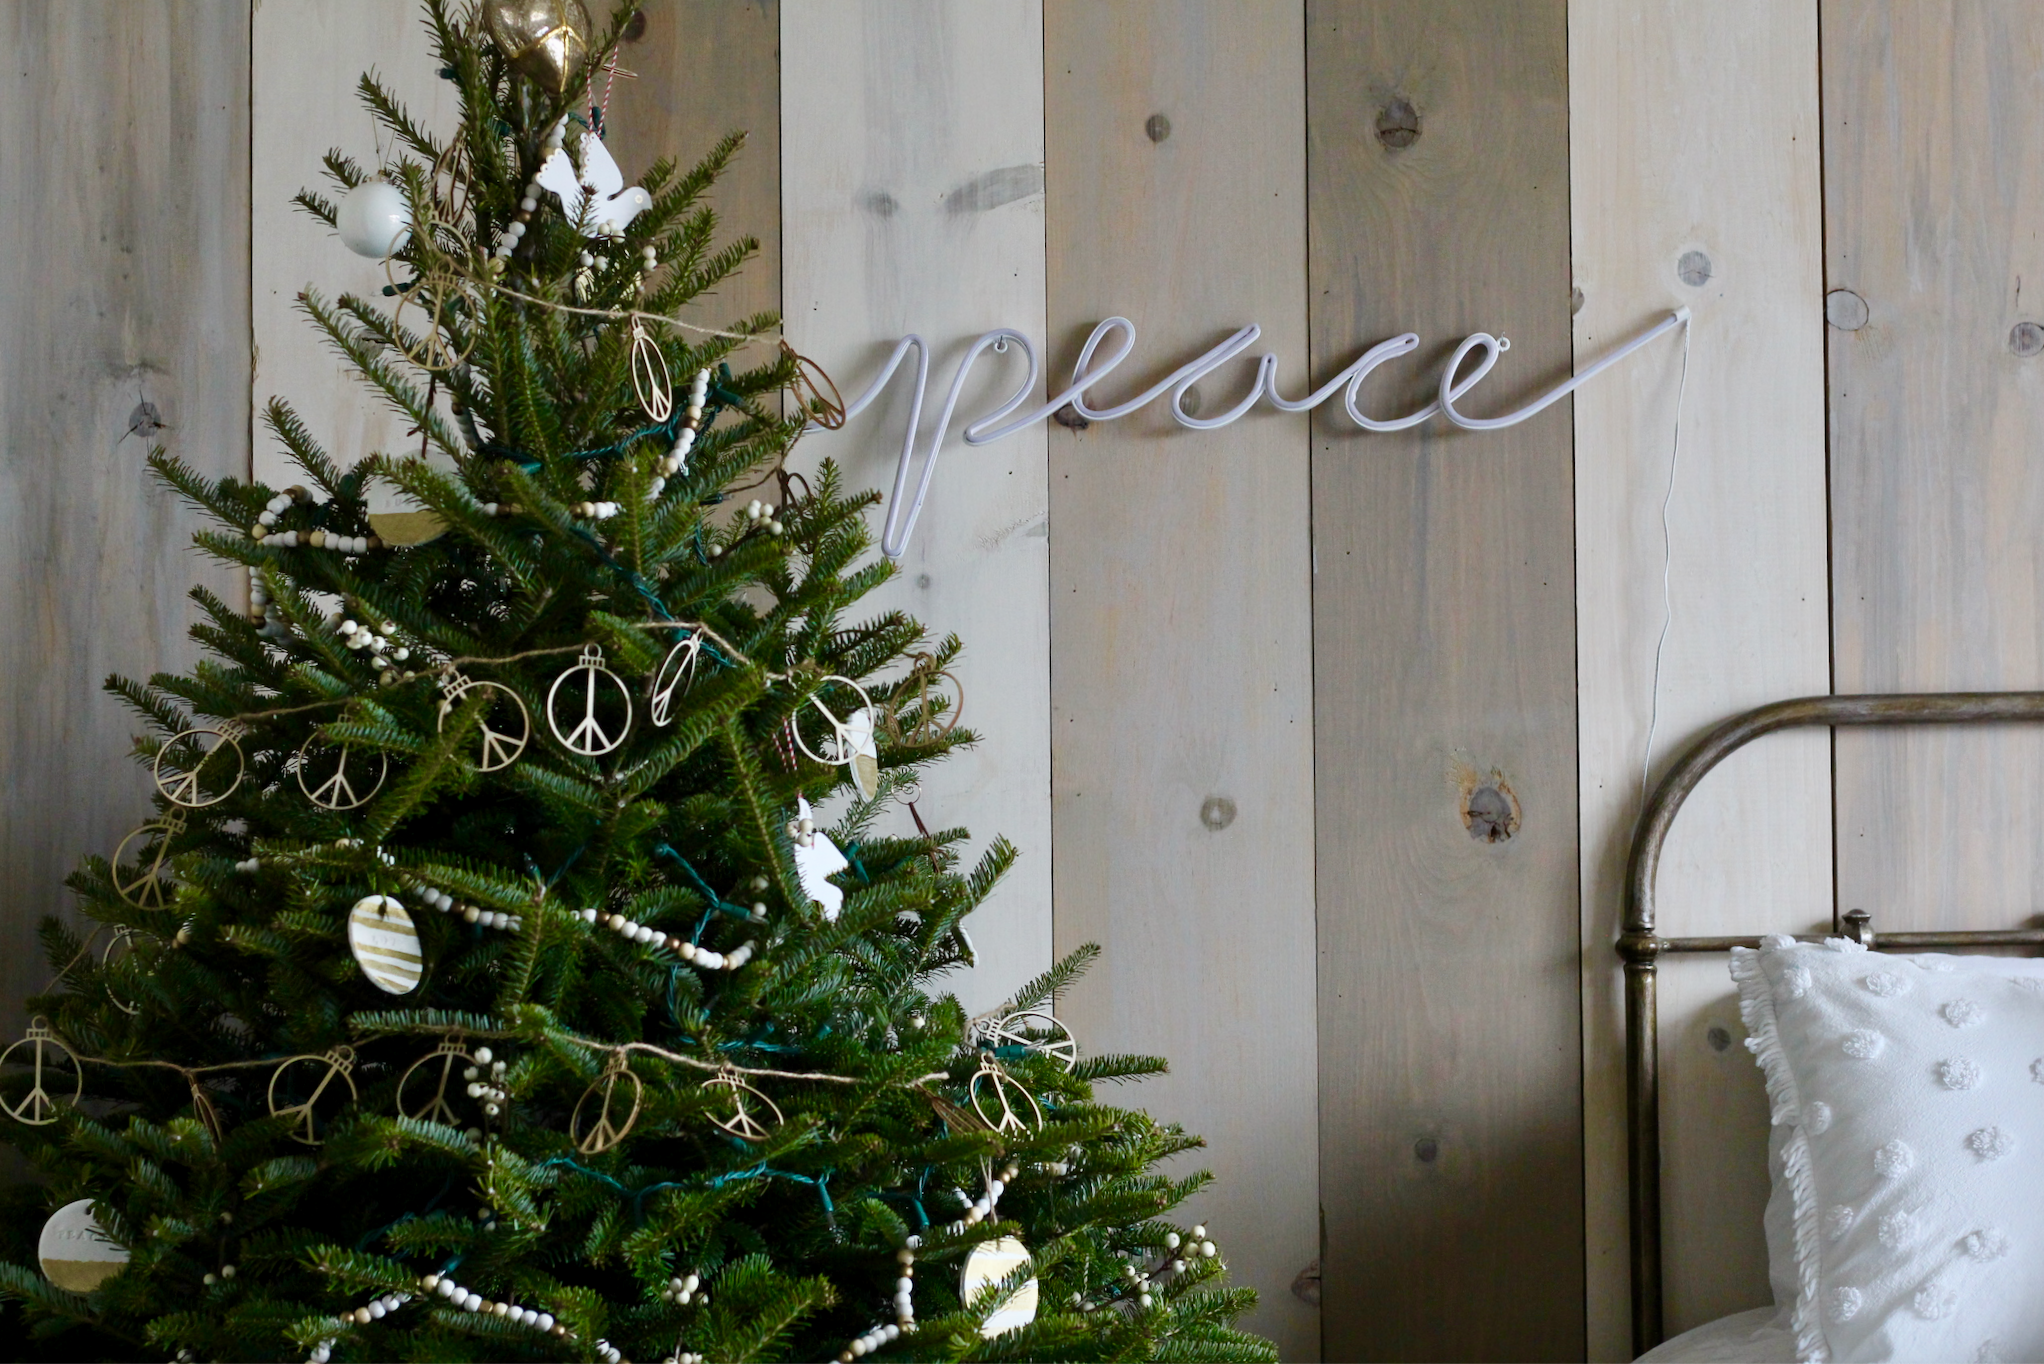 Peace neon sign from Potterybarn